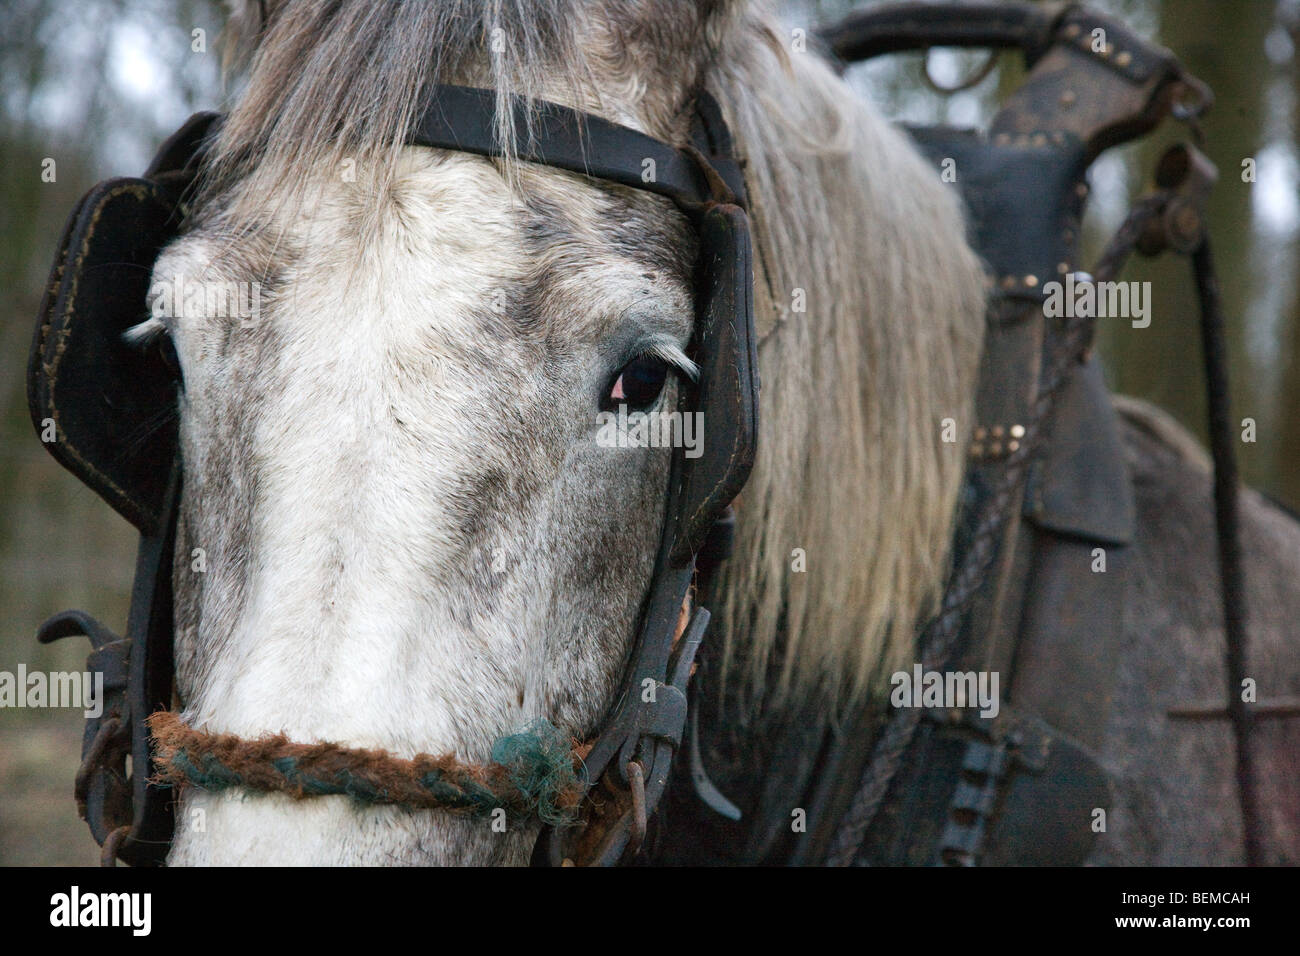 Close up of draught horse (Equus caballus) with harness, Belgium - Stock Image